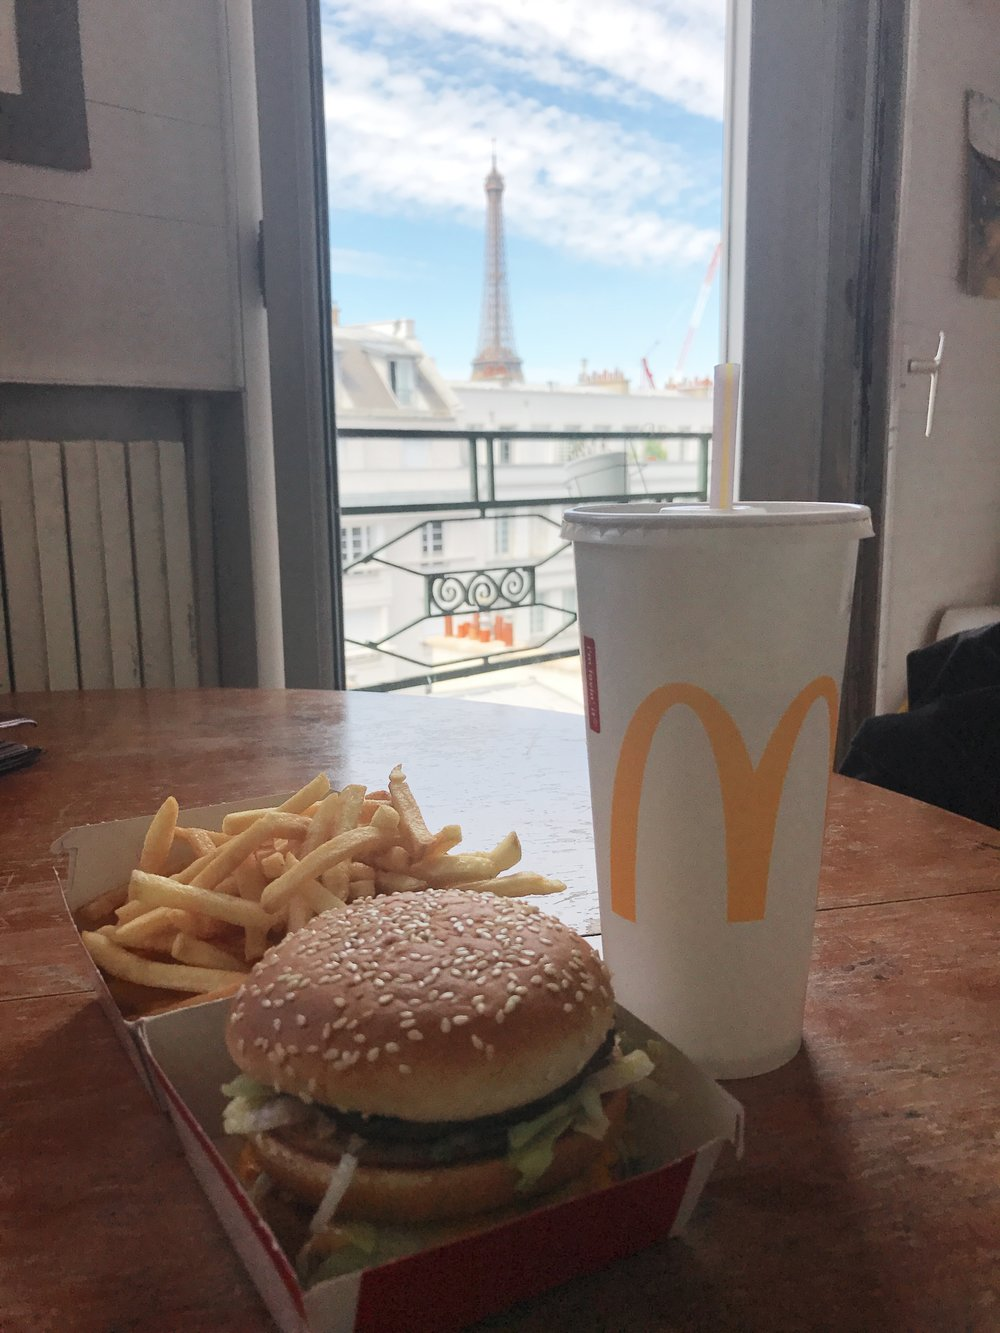 Who'd ever think McDonald's could look this good?